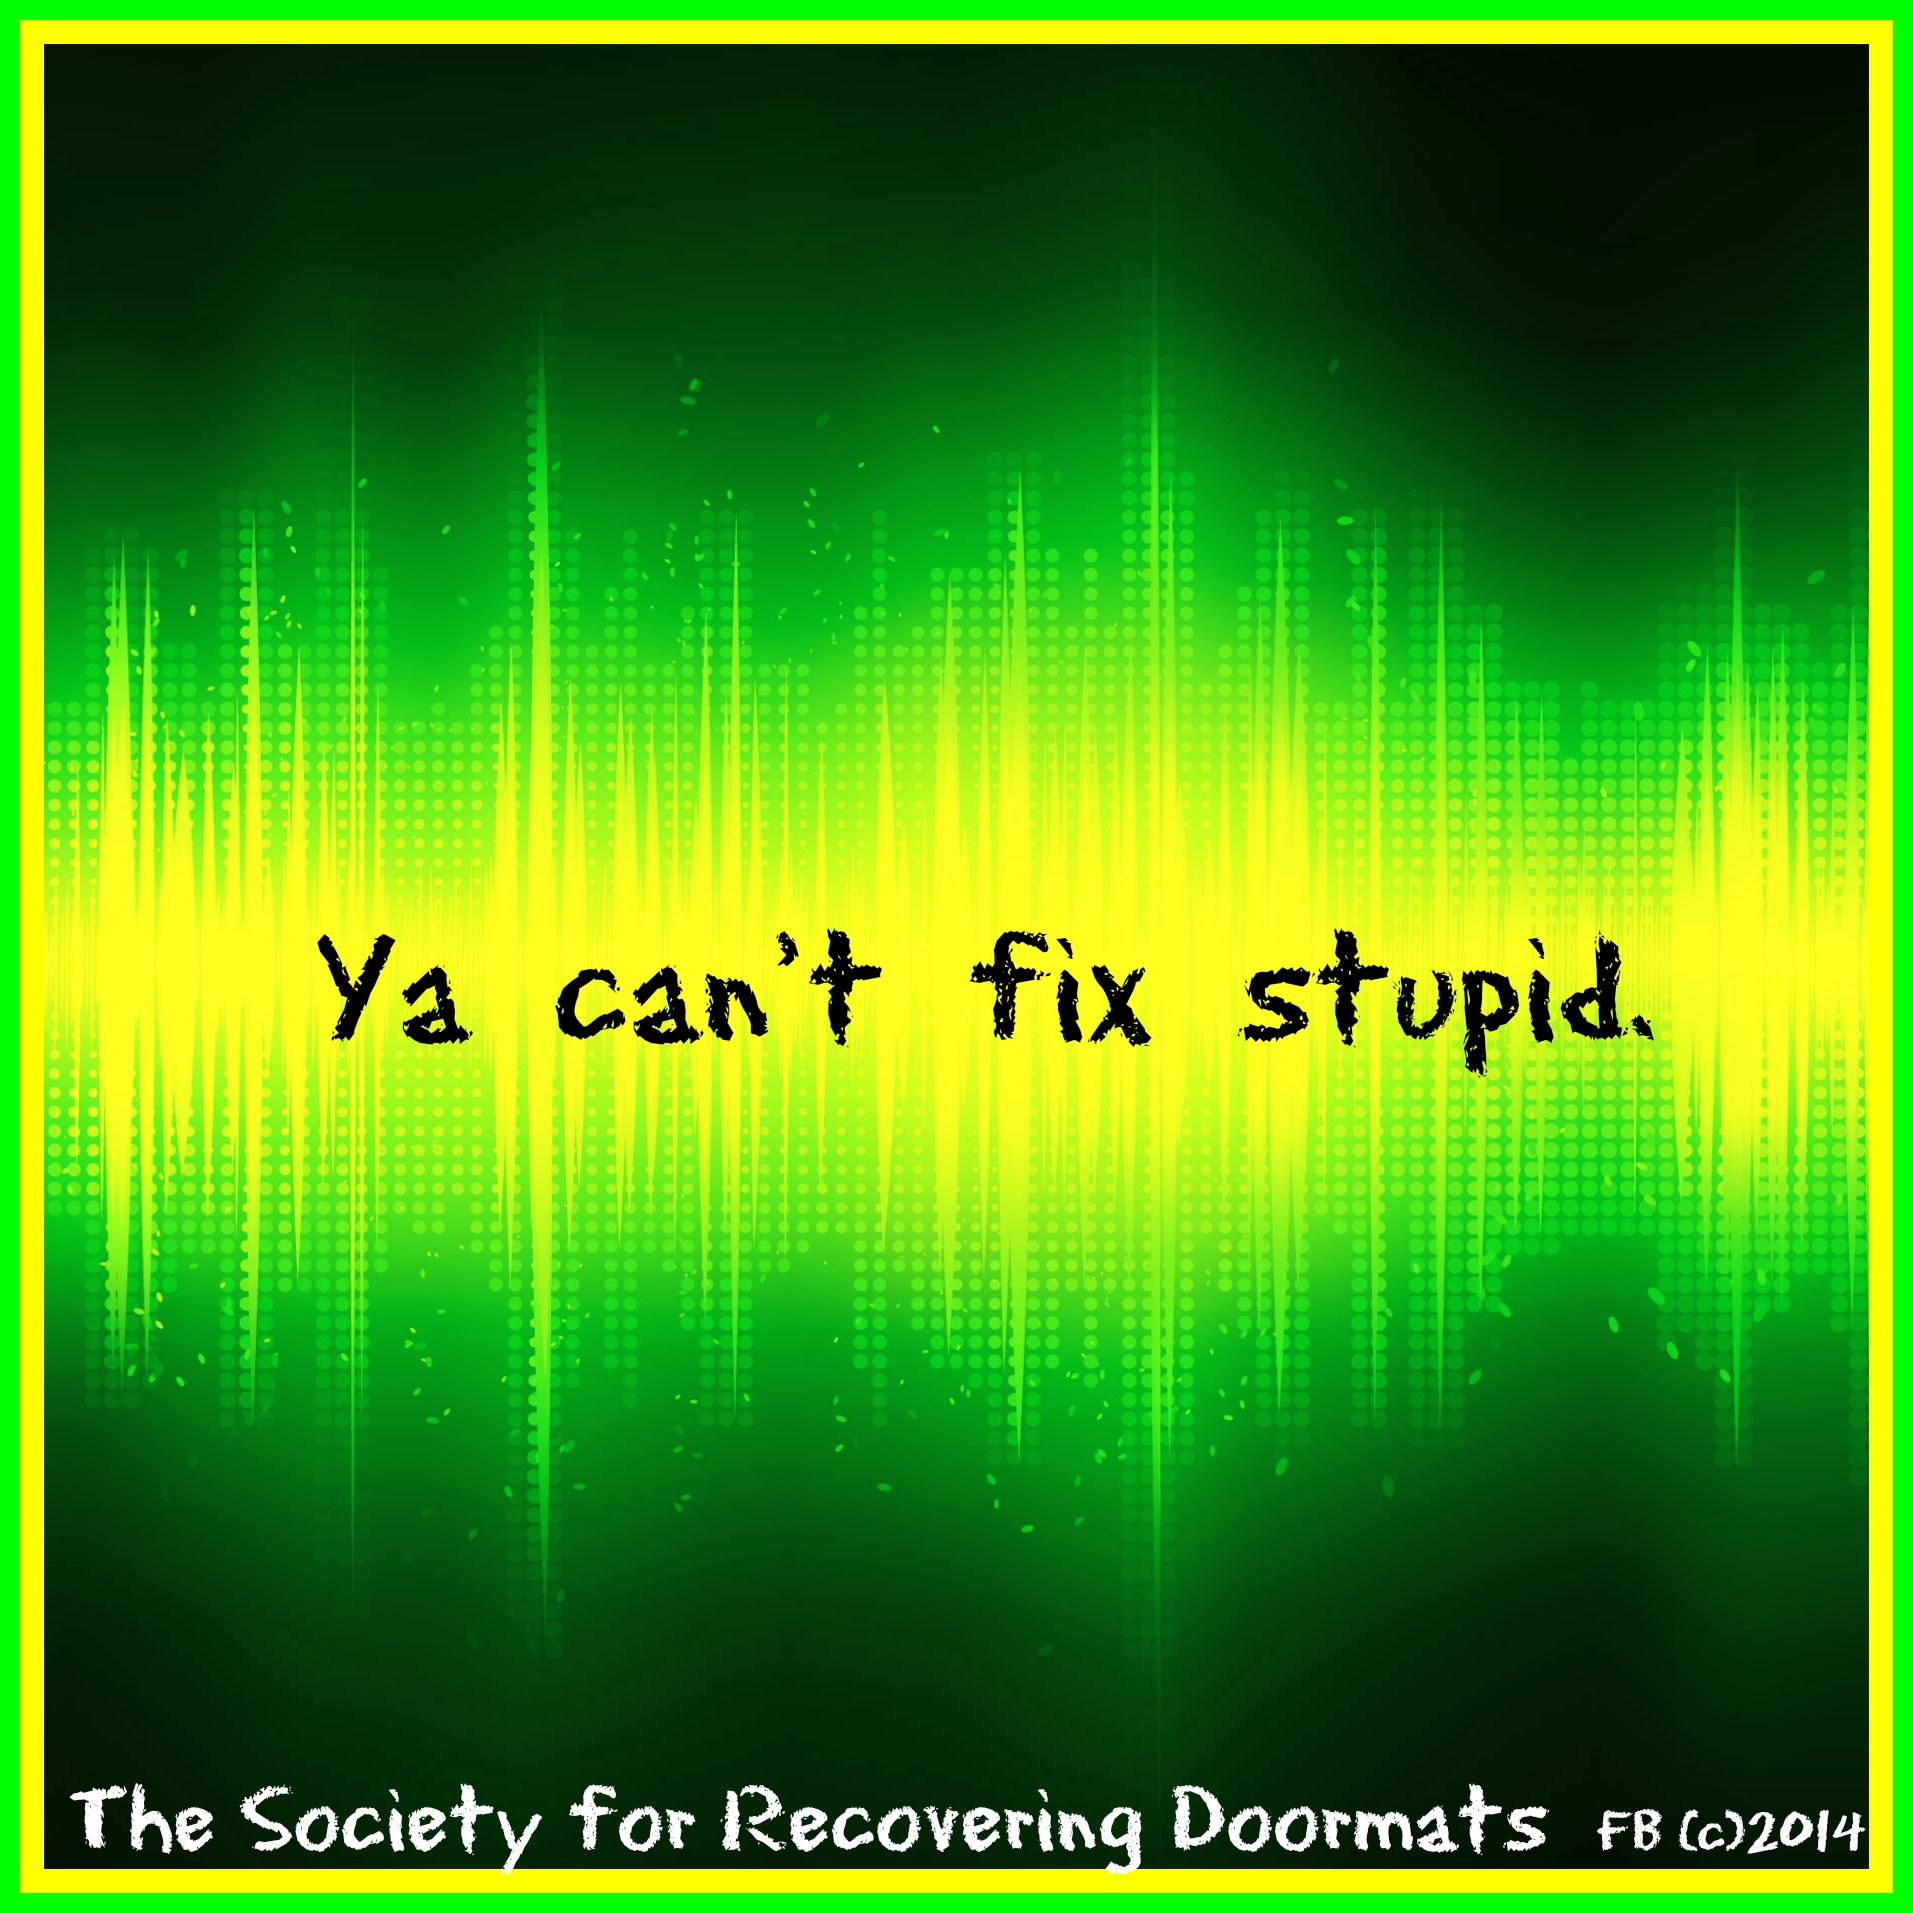 Ya can't fix stupid.